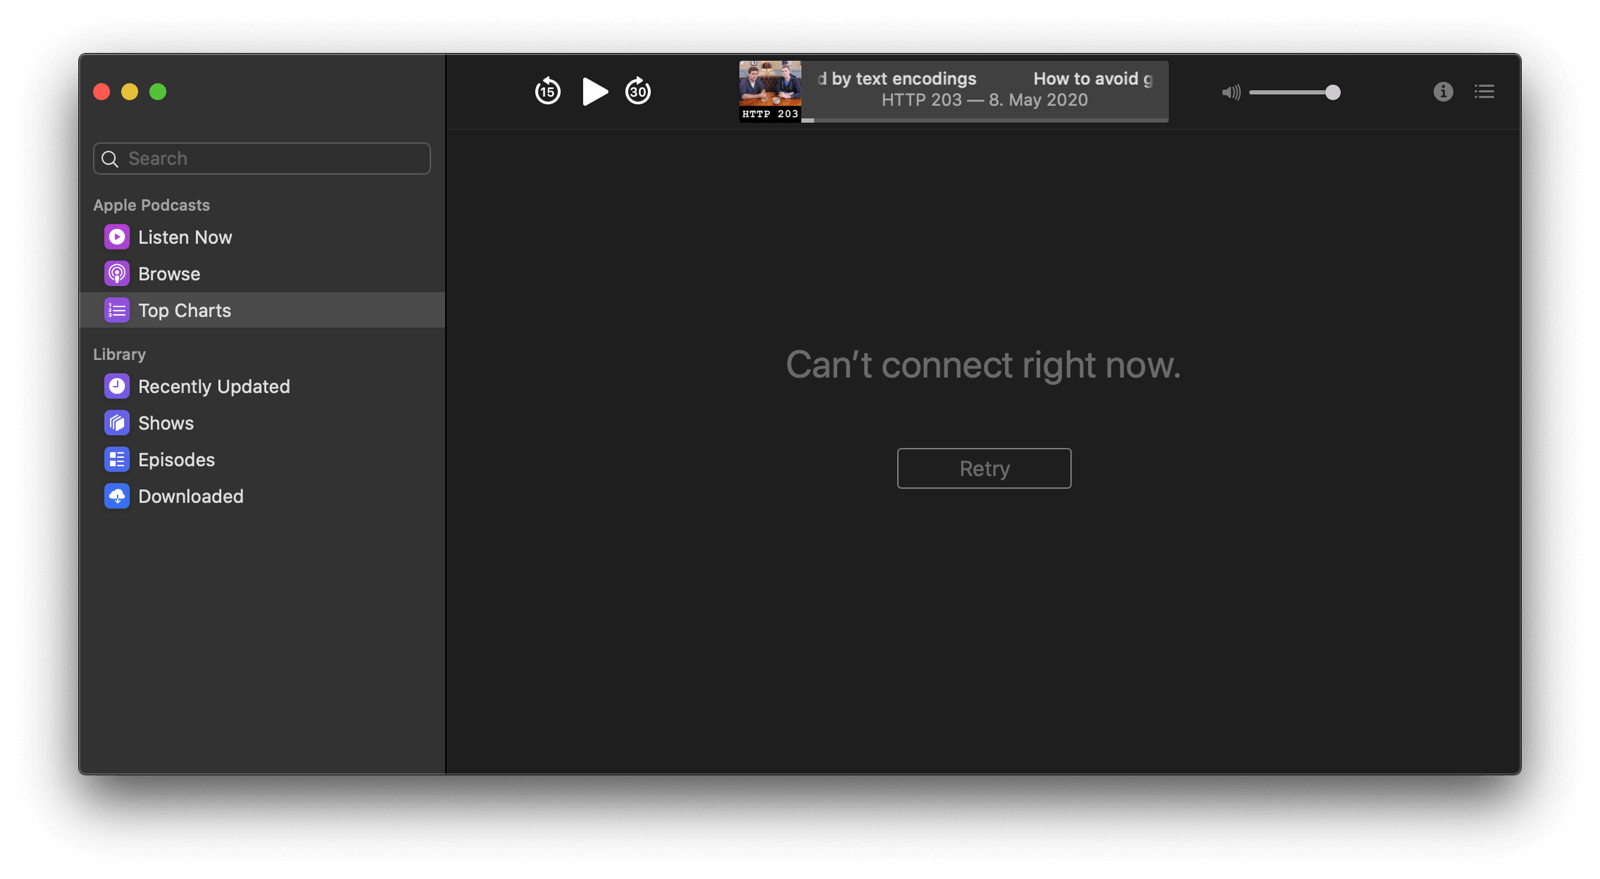 The Podcasts app showing a 'Cannot connect right now.' info message when no network connection is available.